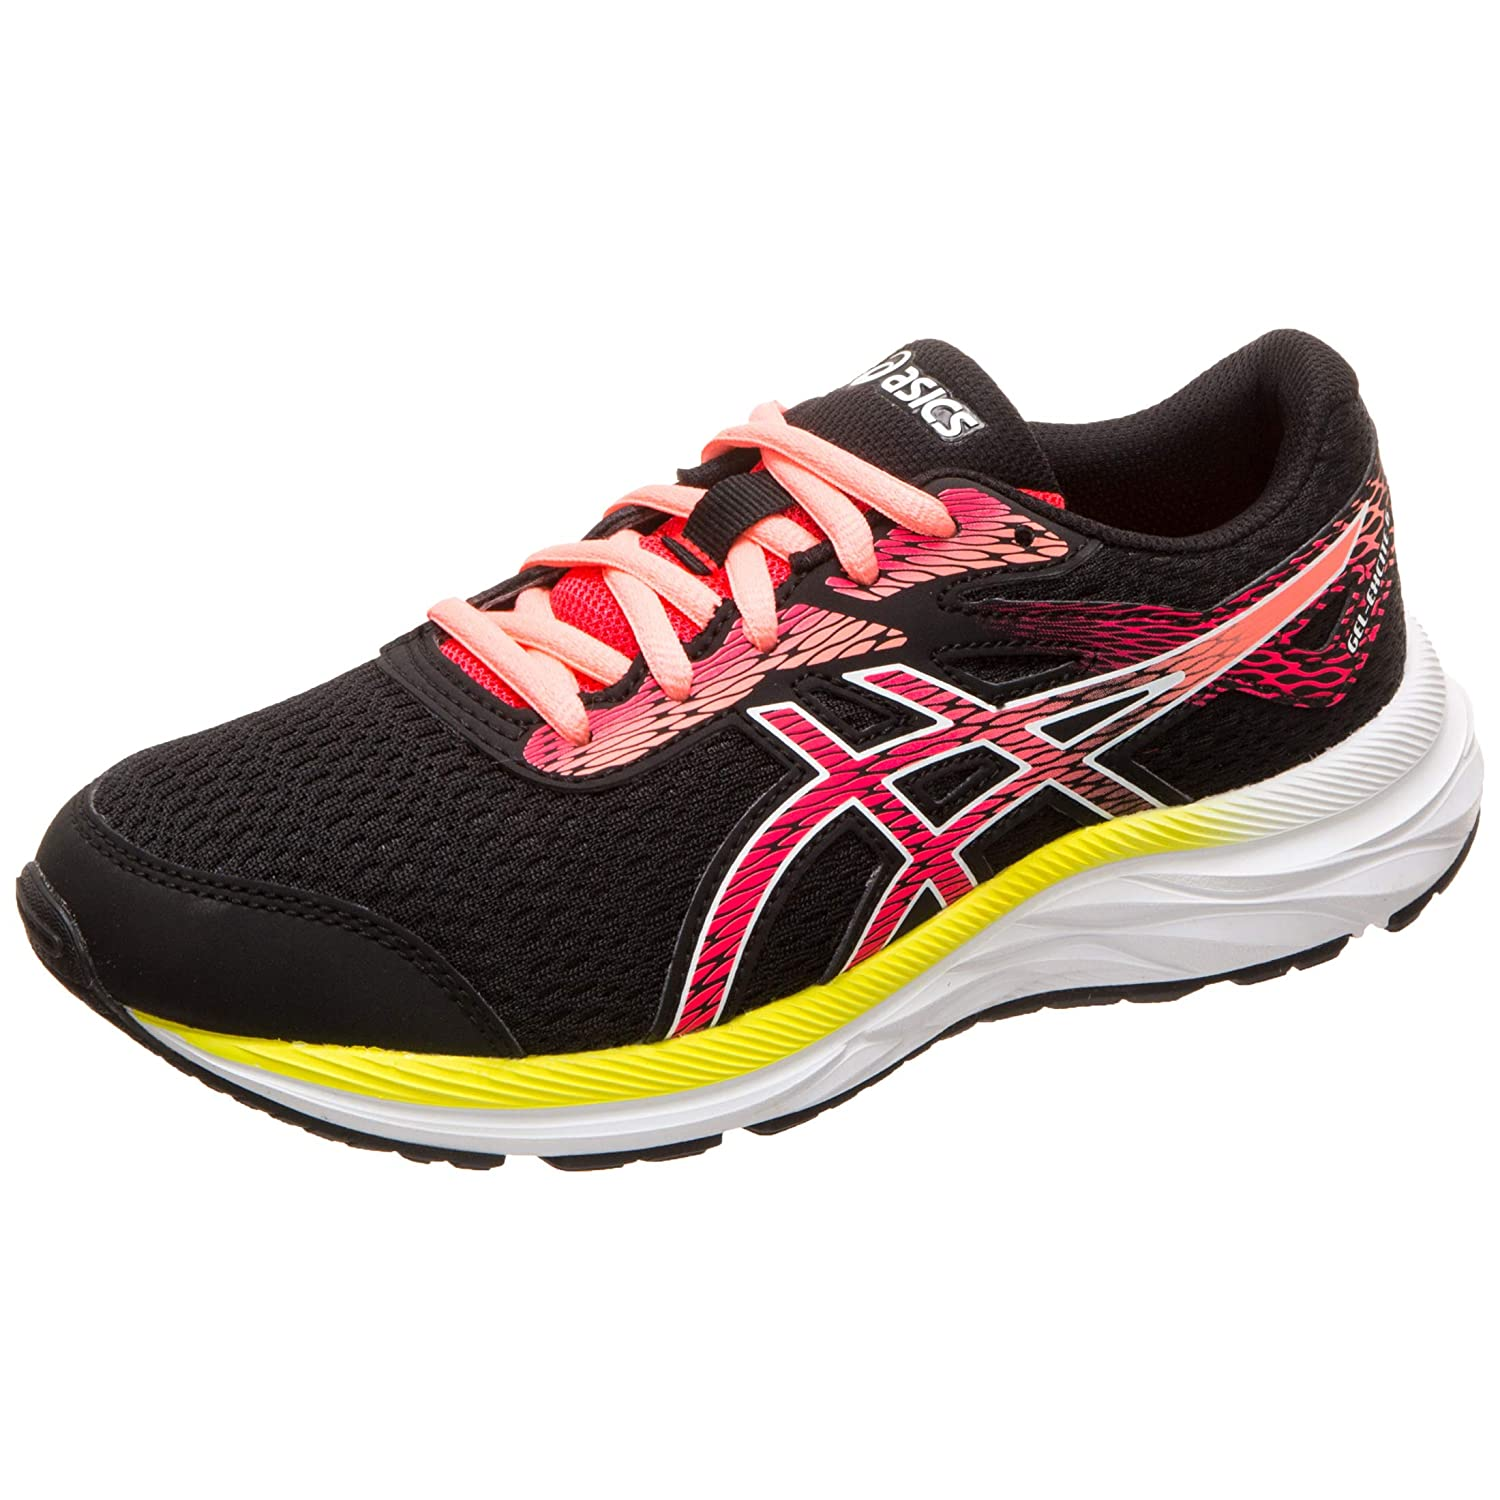 6 Gs 1014a079 Et Chemin Gel Excite Route Running Asics 002 5Rq34ALcj